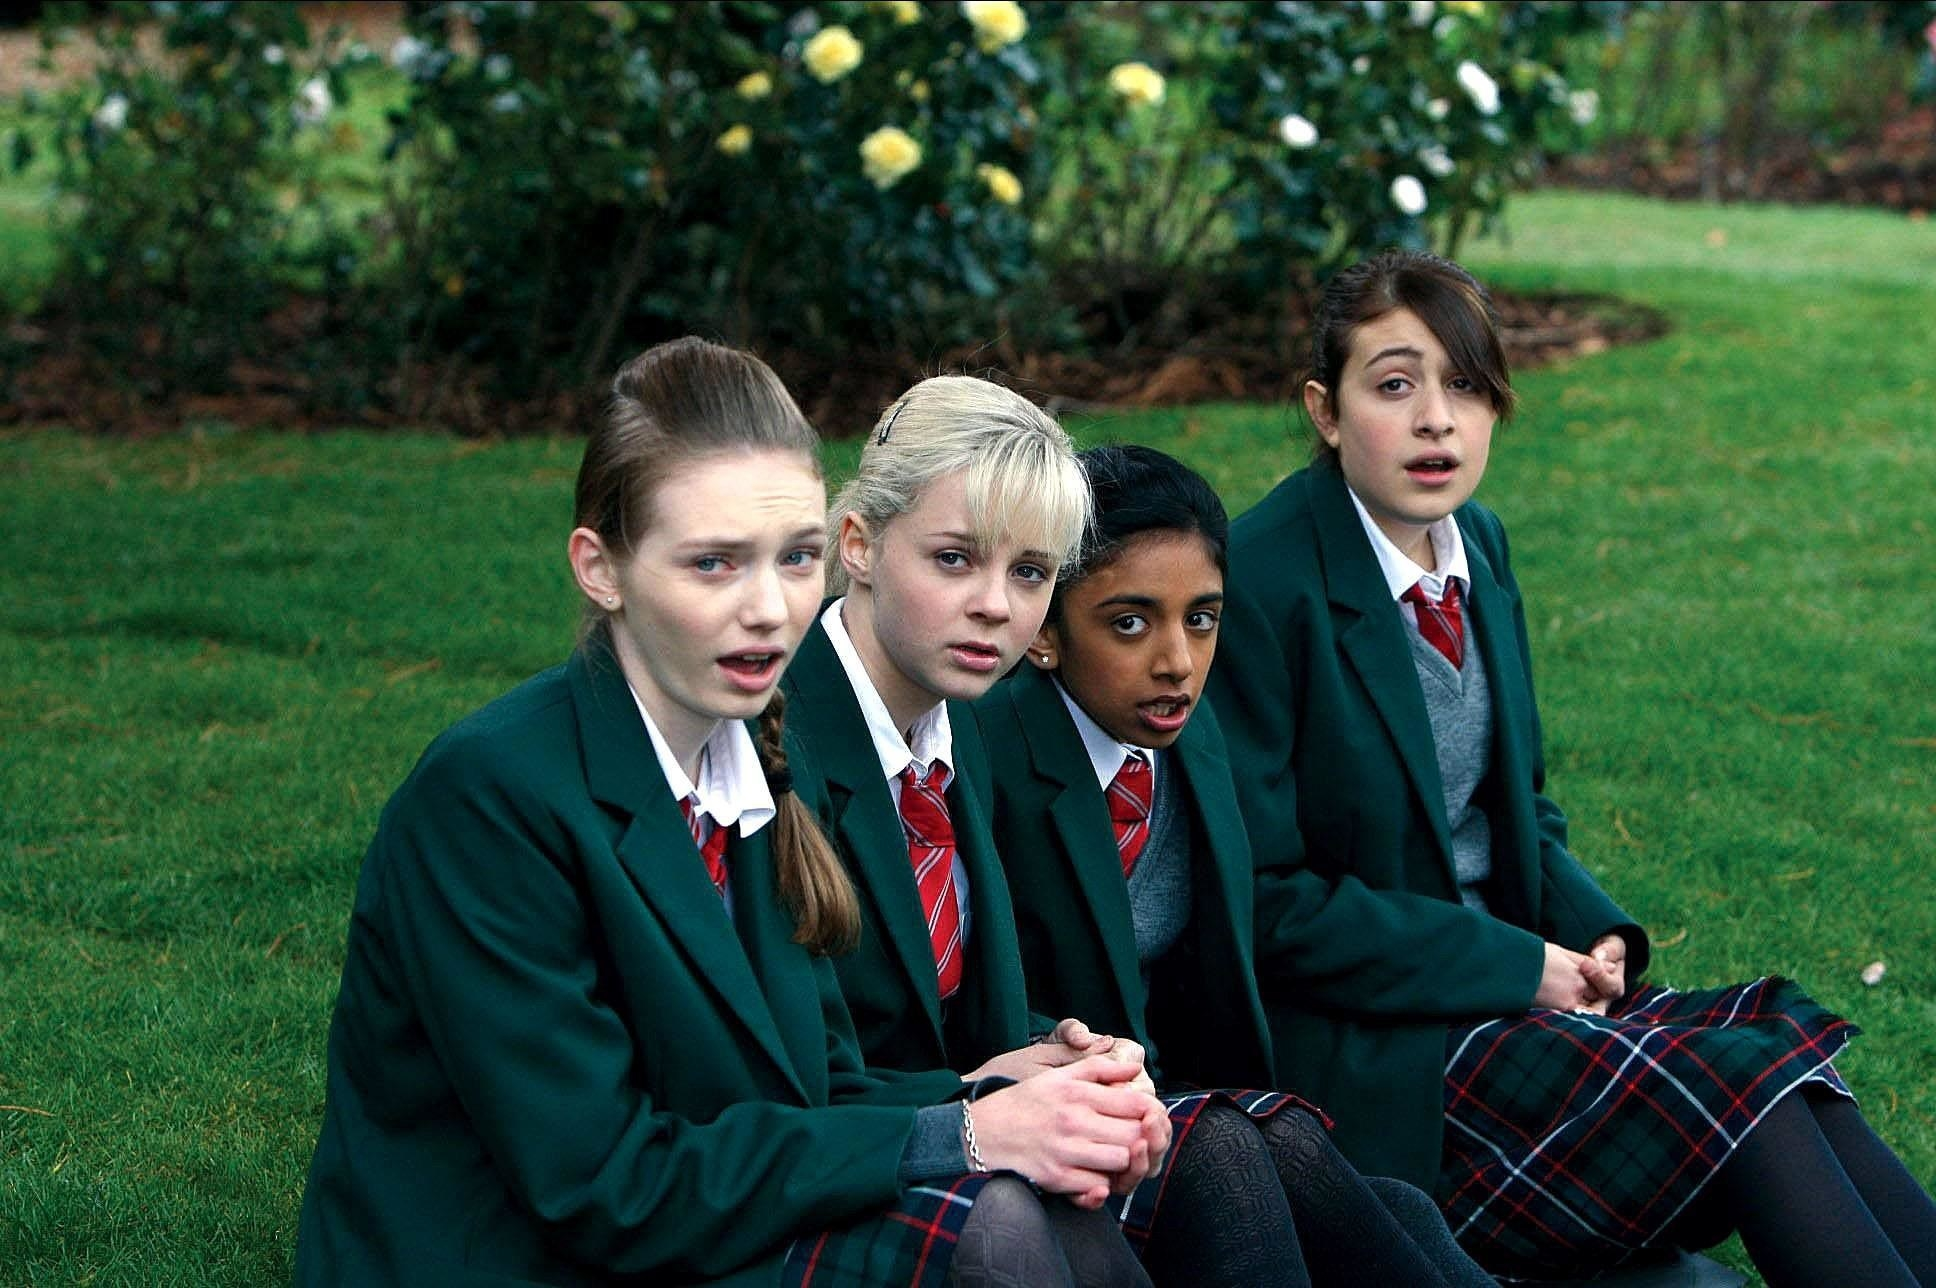 Eleanor Tomlinson, Georgia Henshaw, Manjeeven Grewal, and Georgia Groome in Angus, Thongs, and Perfect Snogging